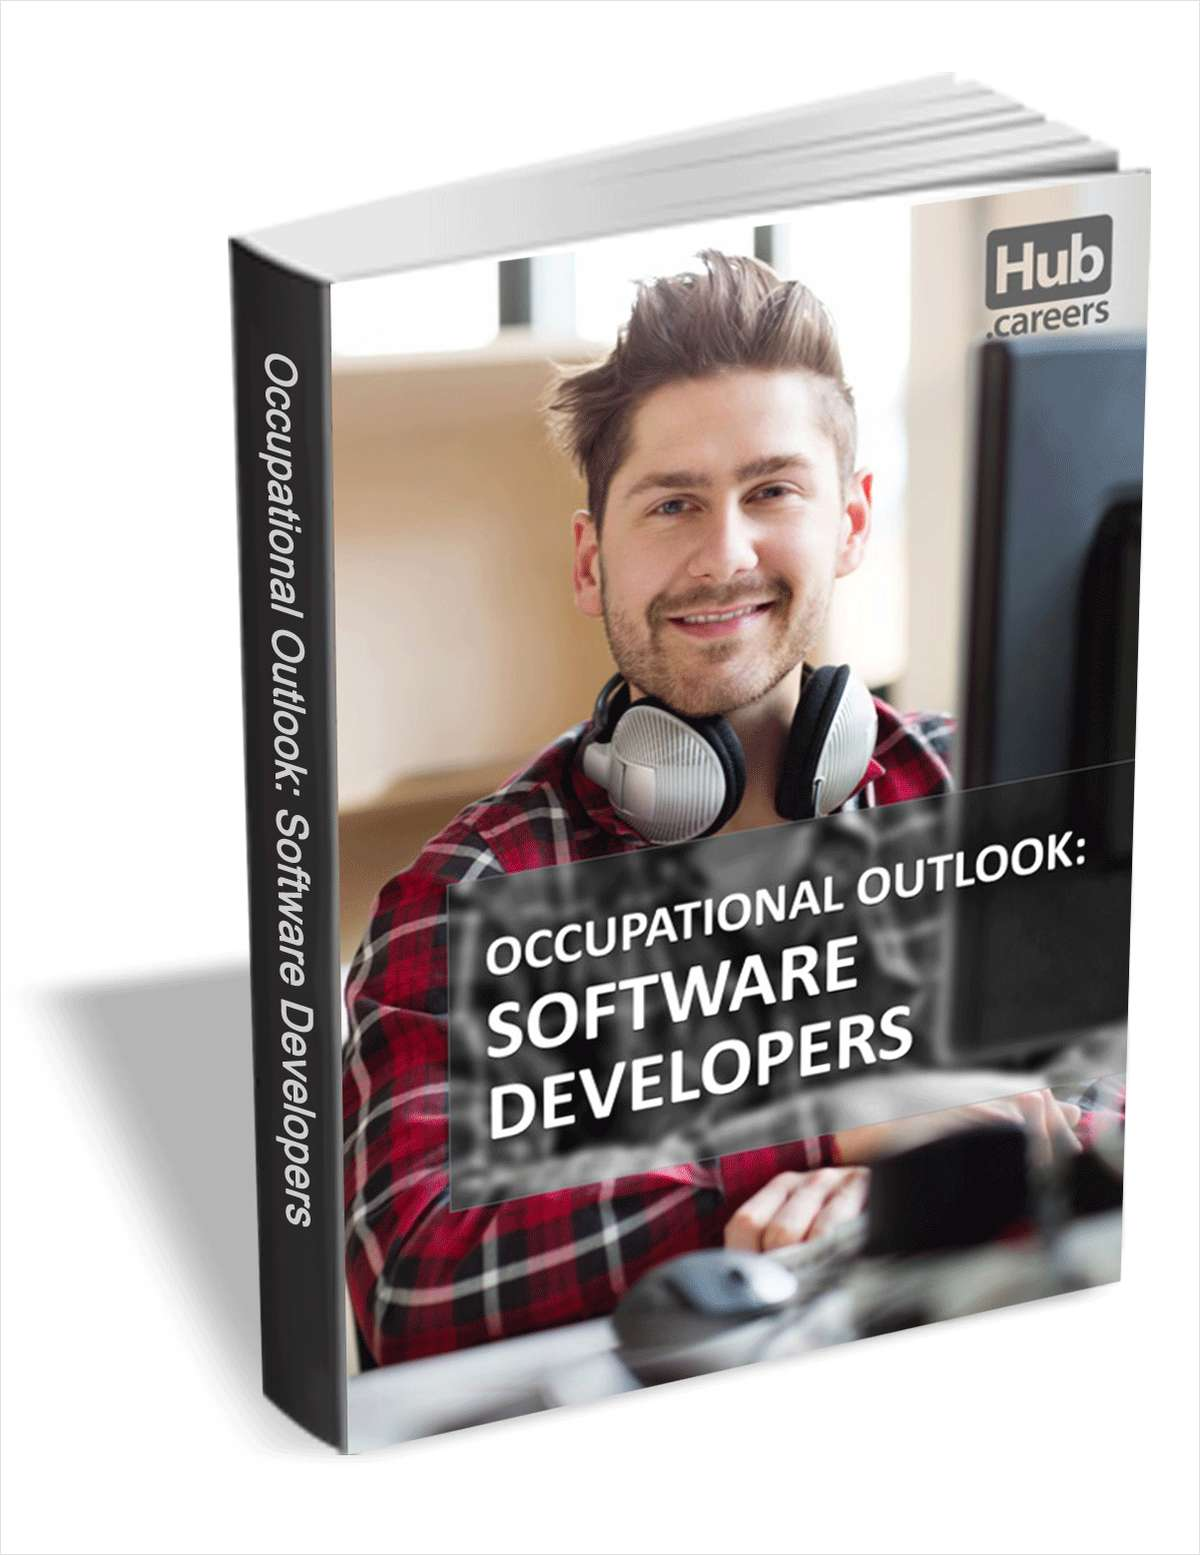 Software Developers - Occupational Outlook